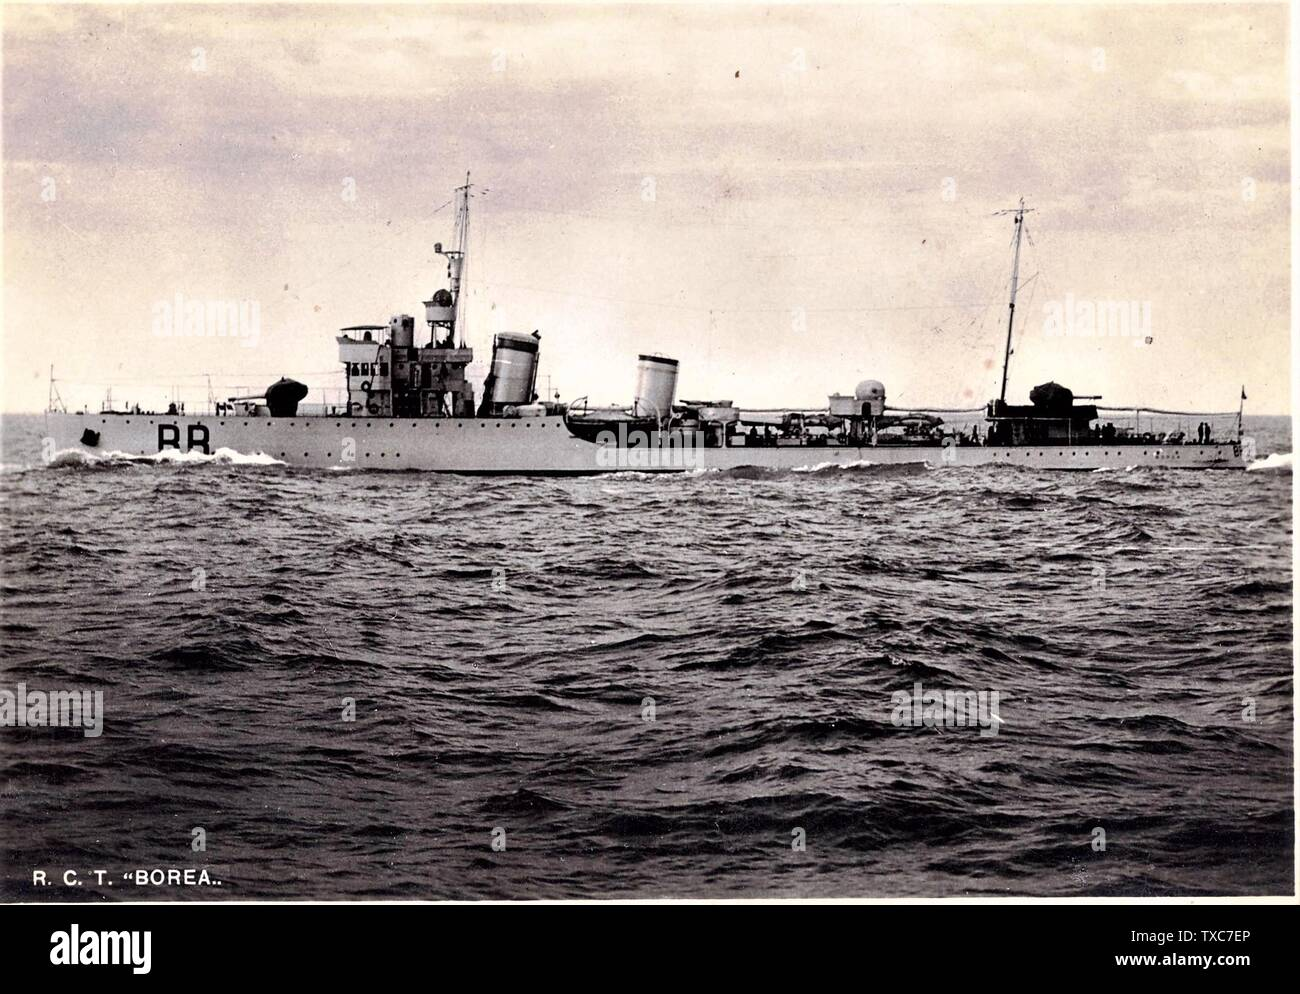 'The destroyer Borea in navigation.; 1930s date QS:P,+1930-00-00T00:00:00Z/8; it.Wikipedia; unattributed; ' - Stock Image